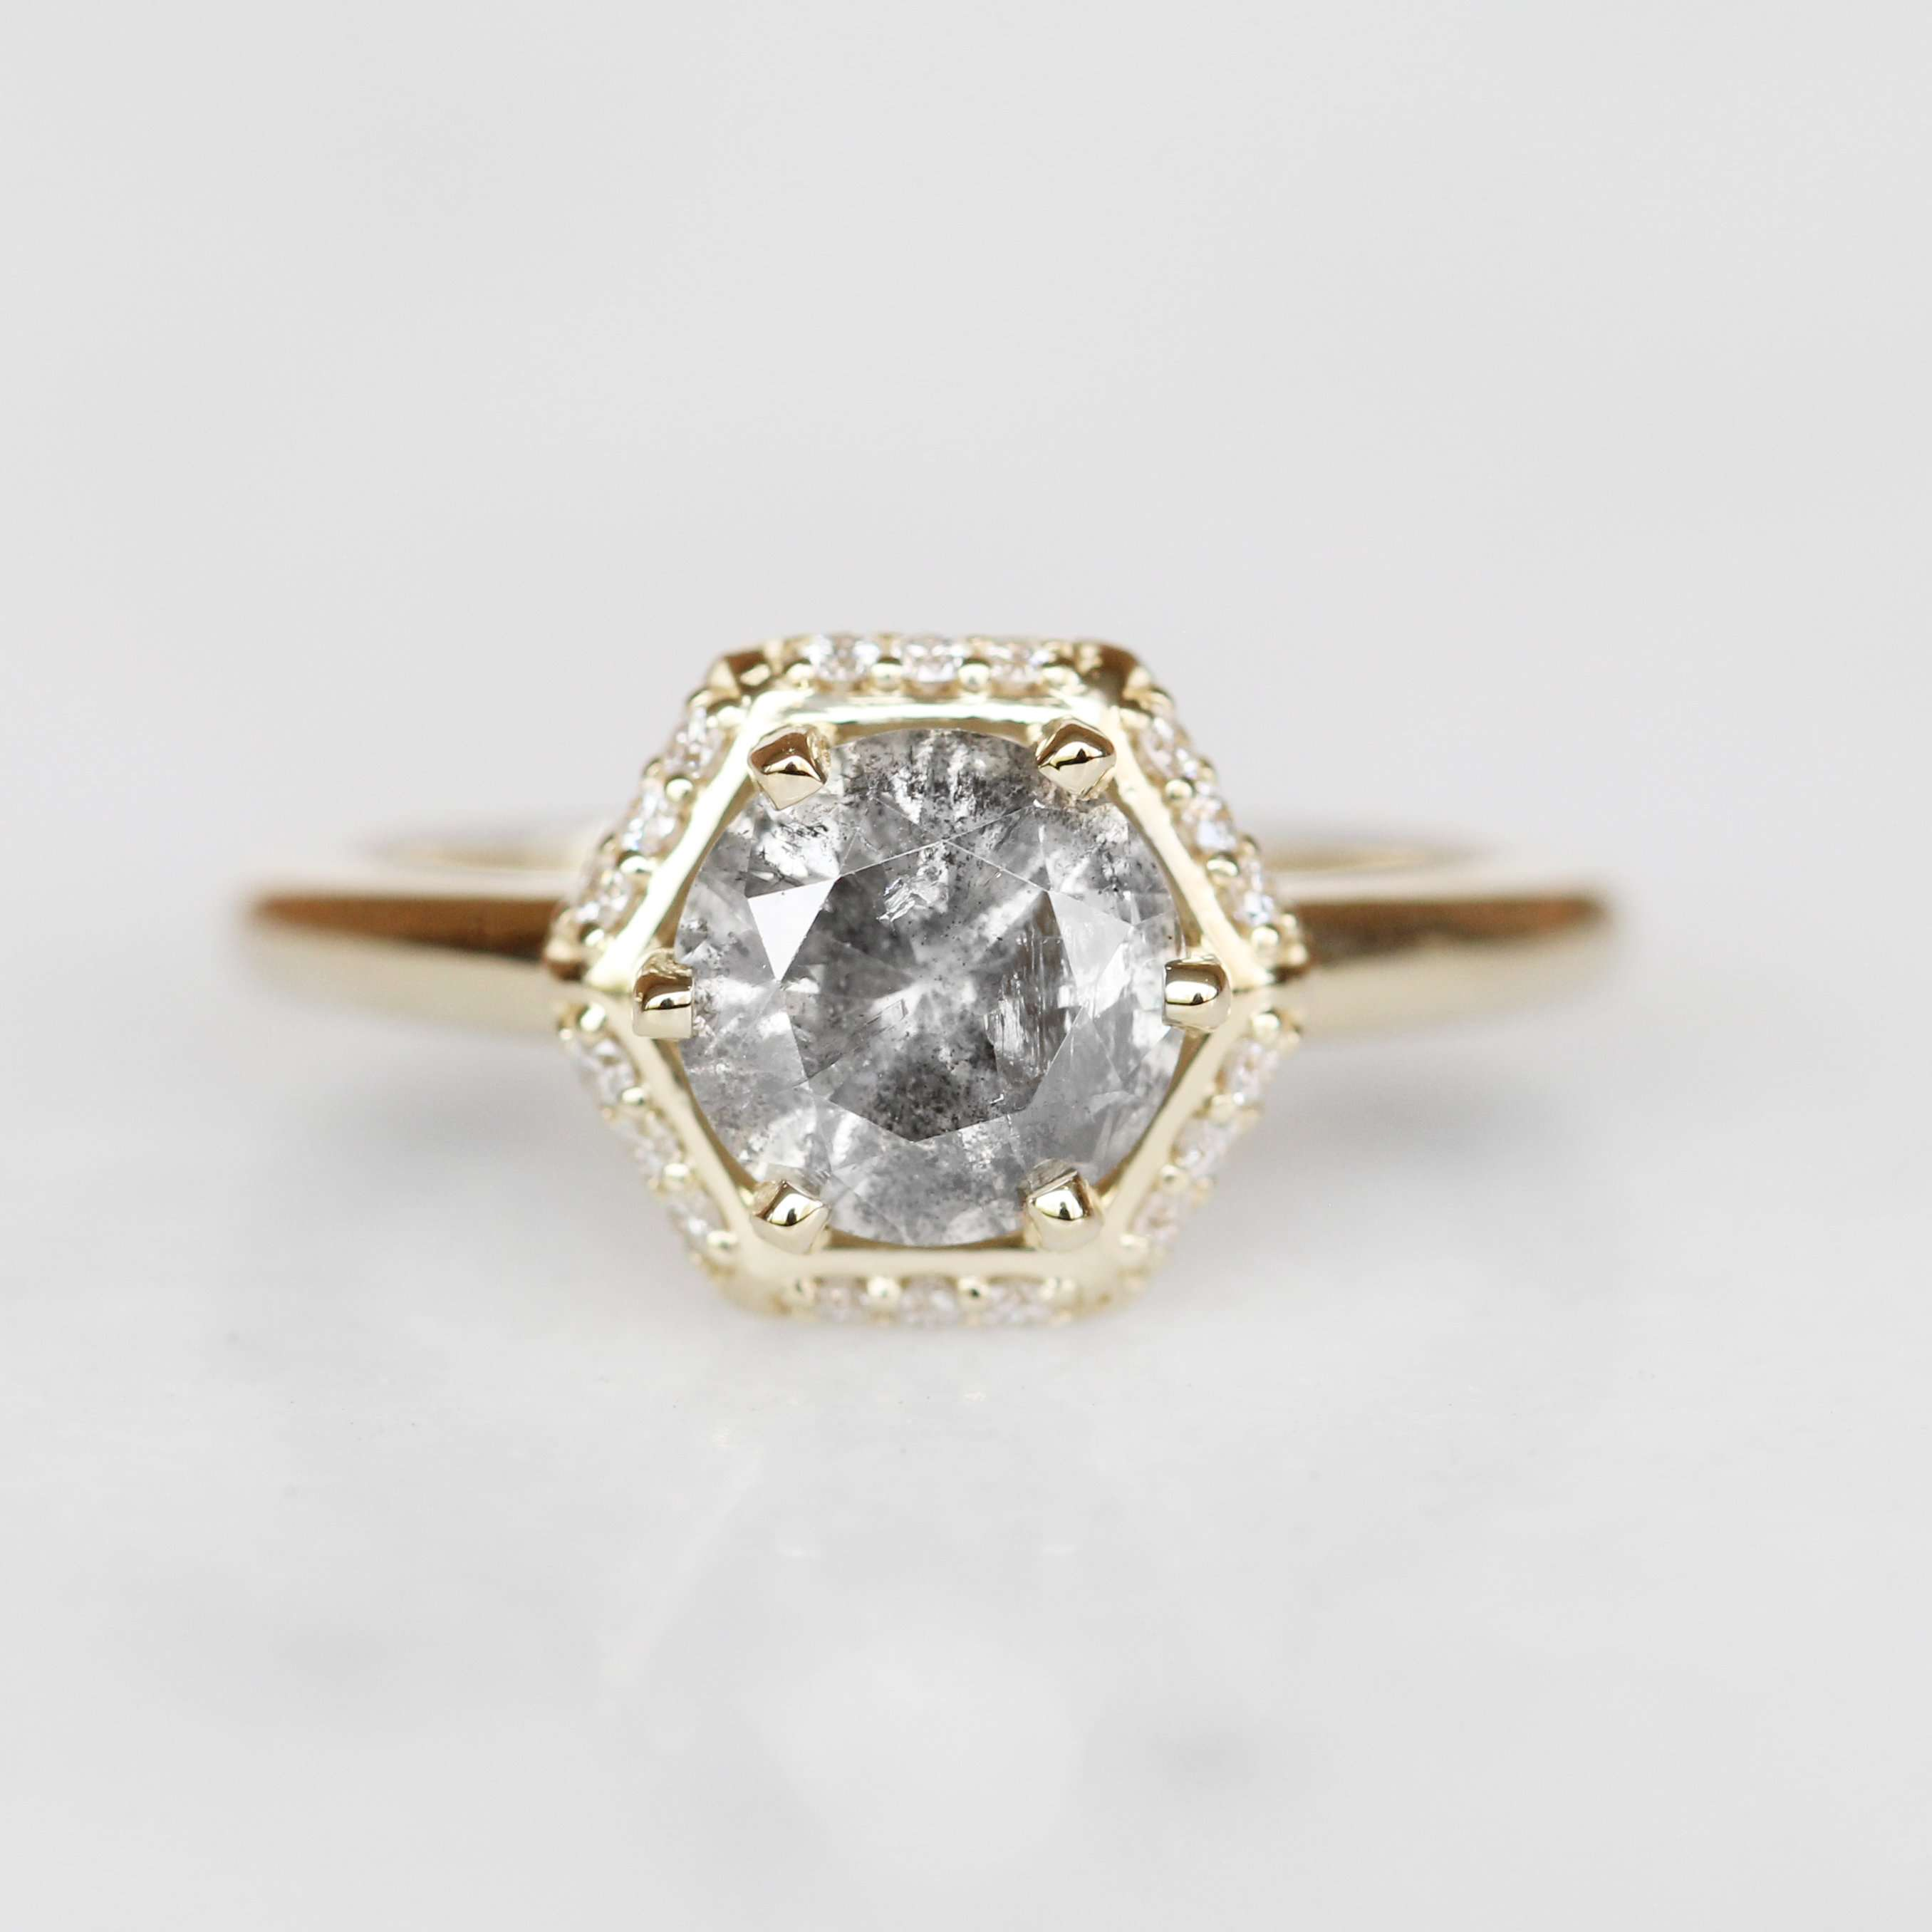 Natural round diamond in a hexagon-shaped diamond halo with a yellow gold setting